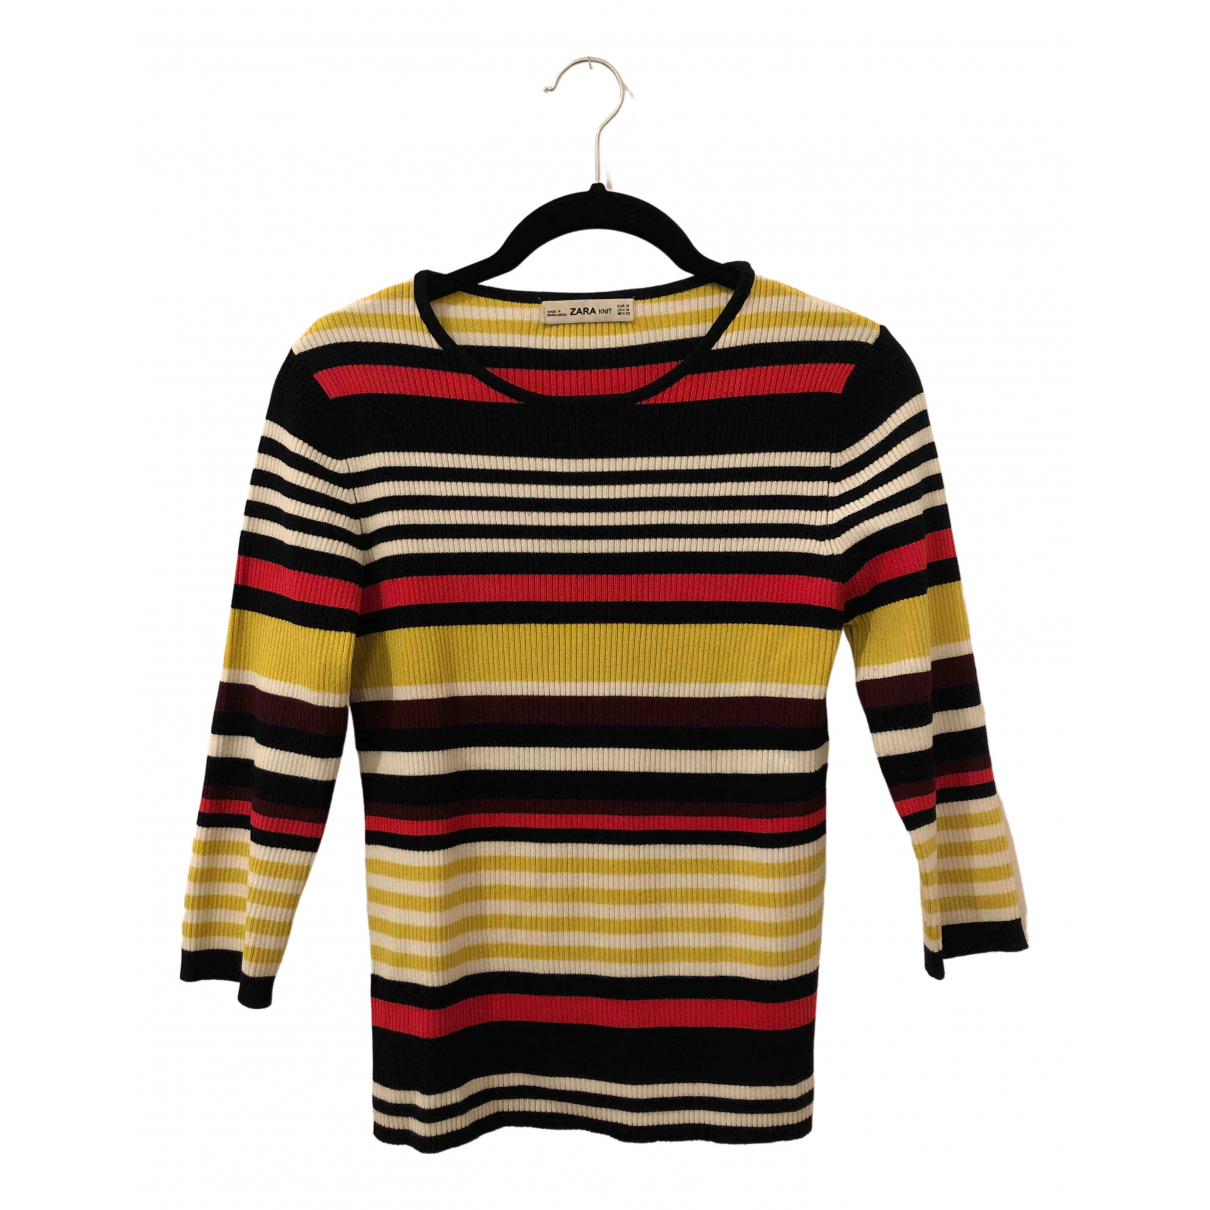 Zara \N Multicolour Knitwear for Women M International